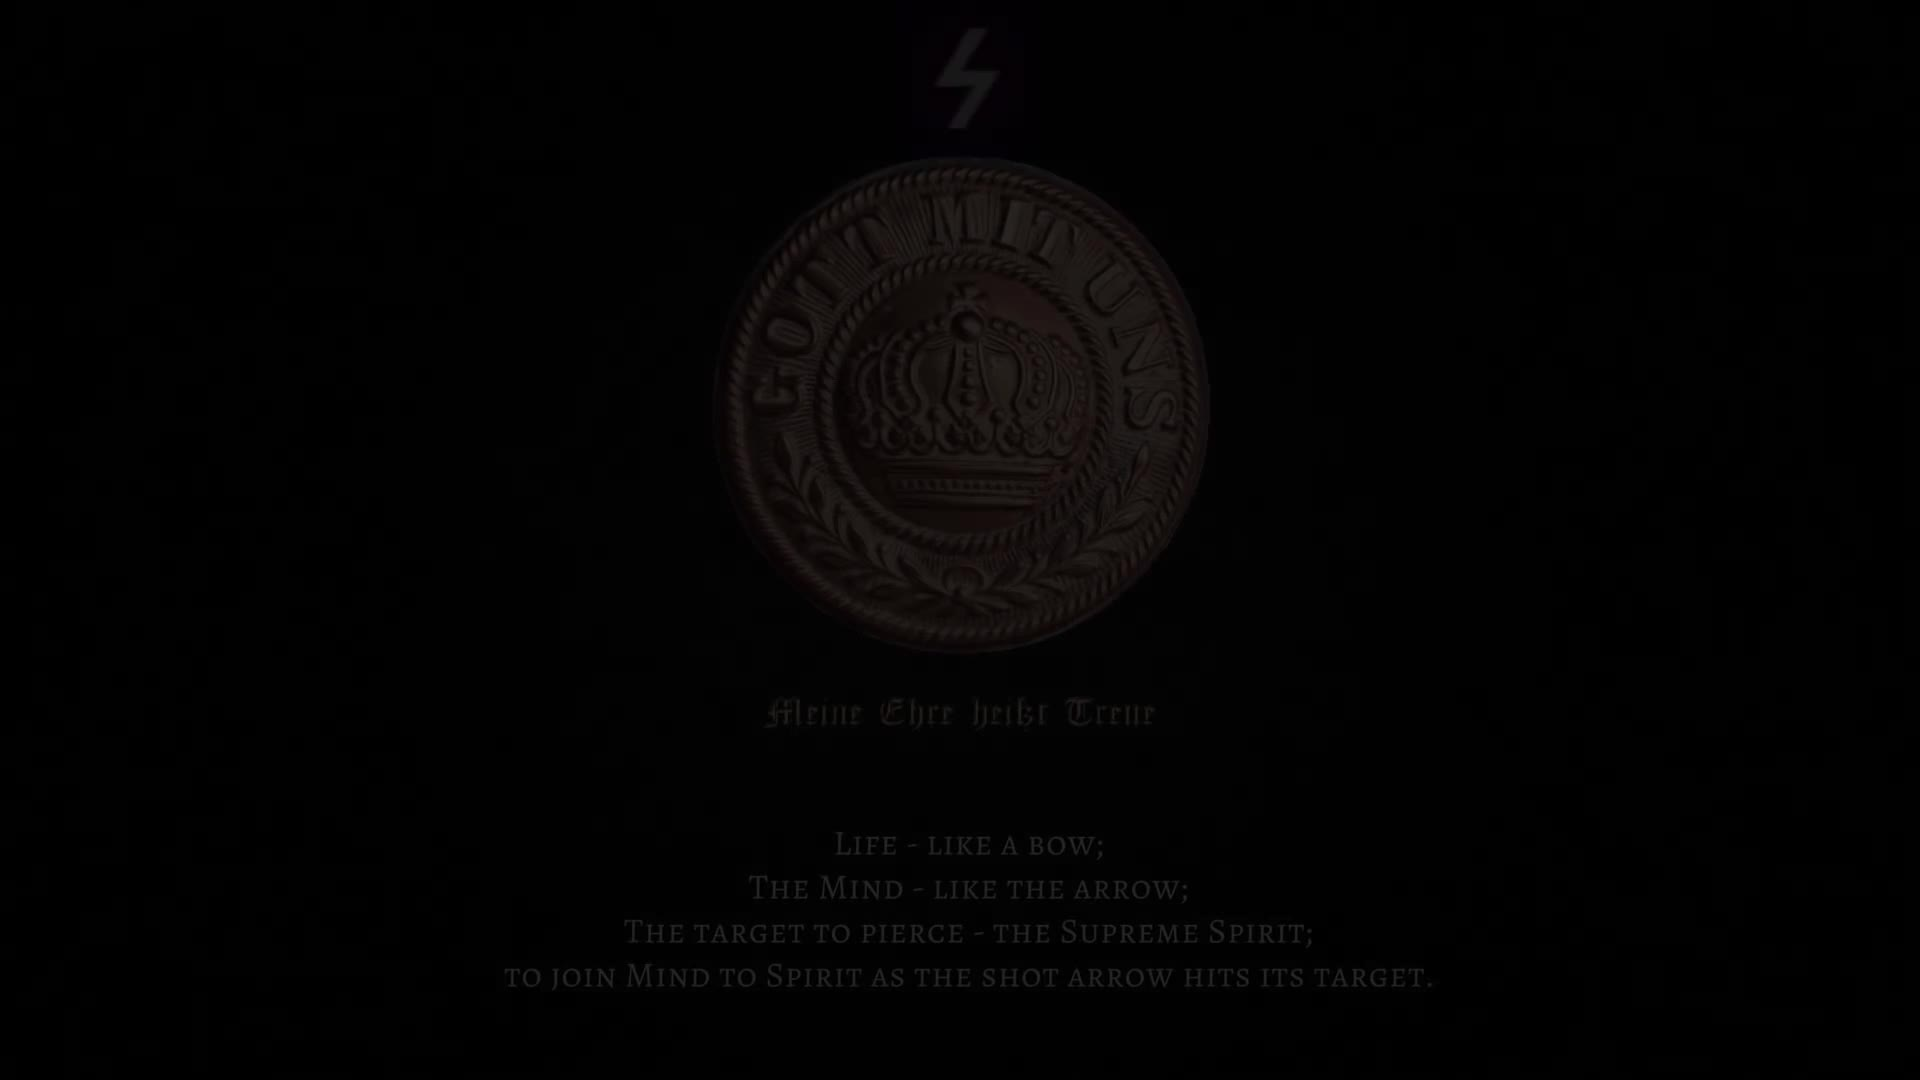 Our Subverted History, Part 5.2 - The Oera Linda Book